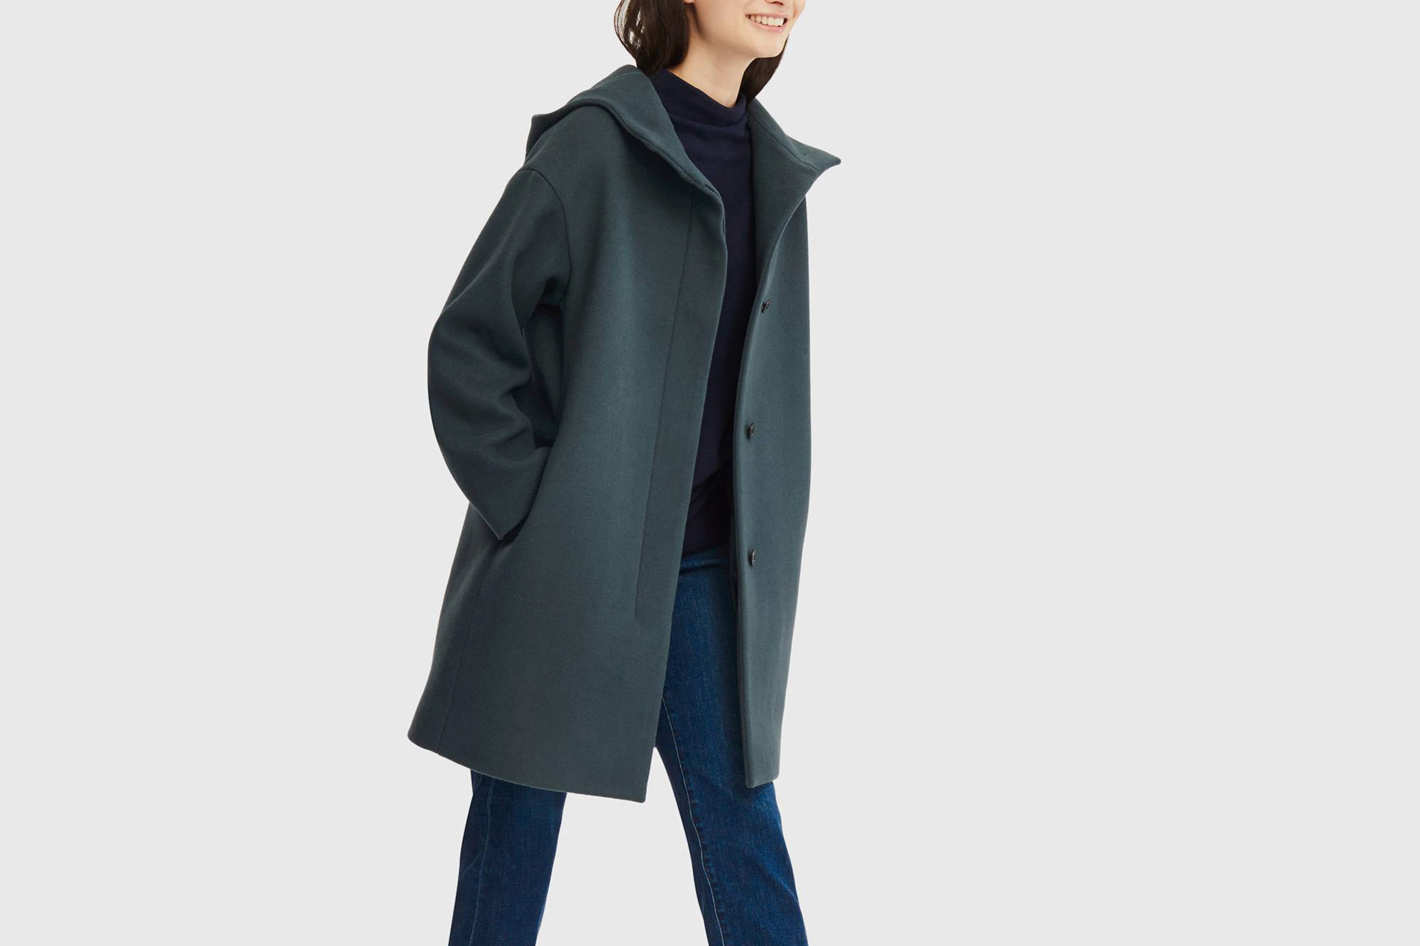 Uniqlo Women's Lightweight Wool-Blend Hooded Coat